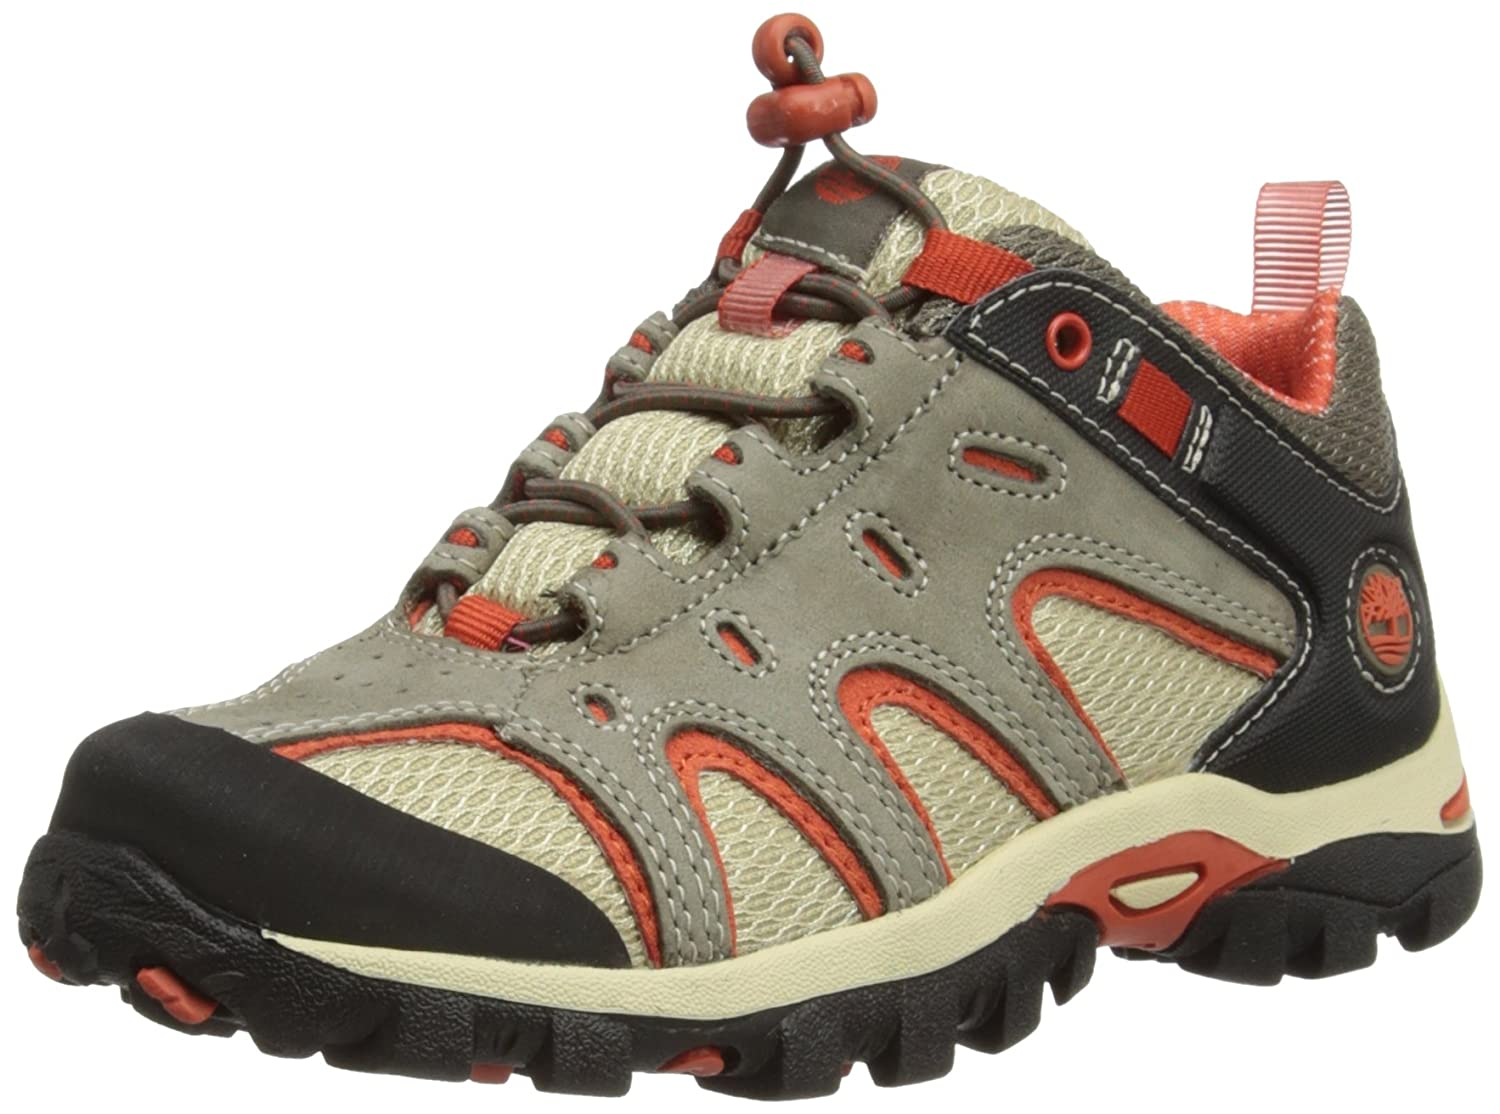 Timberland Hypertrail Lace OX Unisex-Kinder Traillaufschuhe 35.5 EU/UK Youth Hypertrail Lace - K